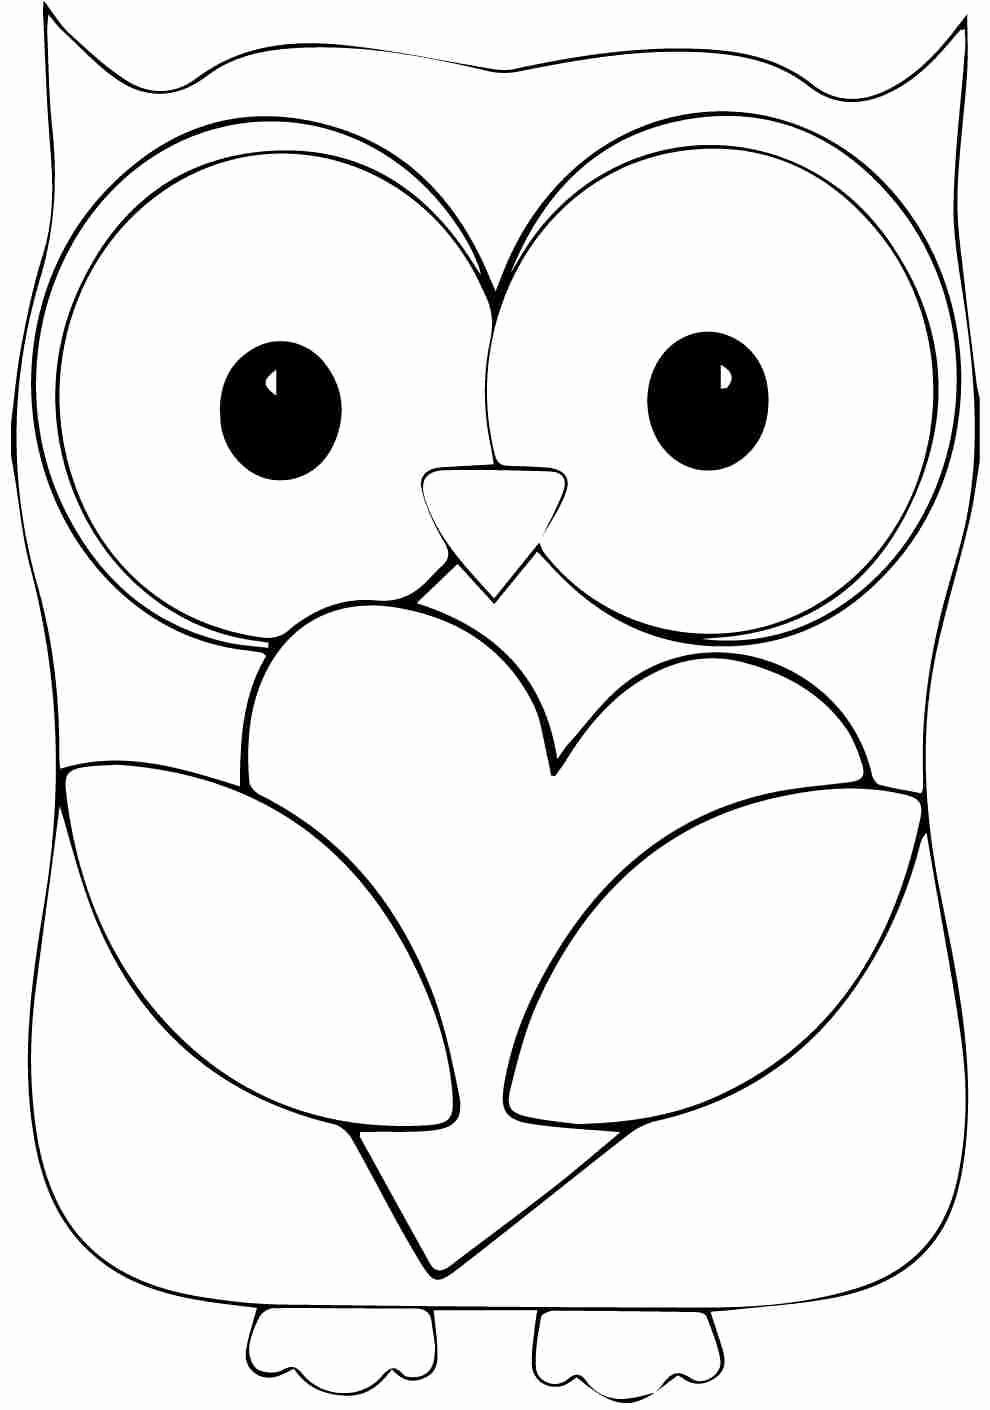 Valentine Animal Coloring Pages Unique Print Full Size Image Printable Animal Owl Coloring In 2020 Owl Coloring Pages Heart Coloring Pages Owl Patterns